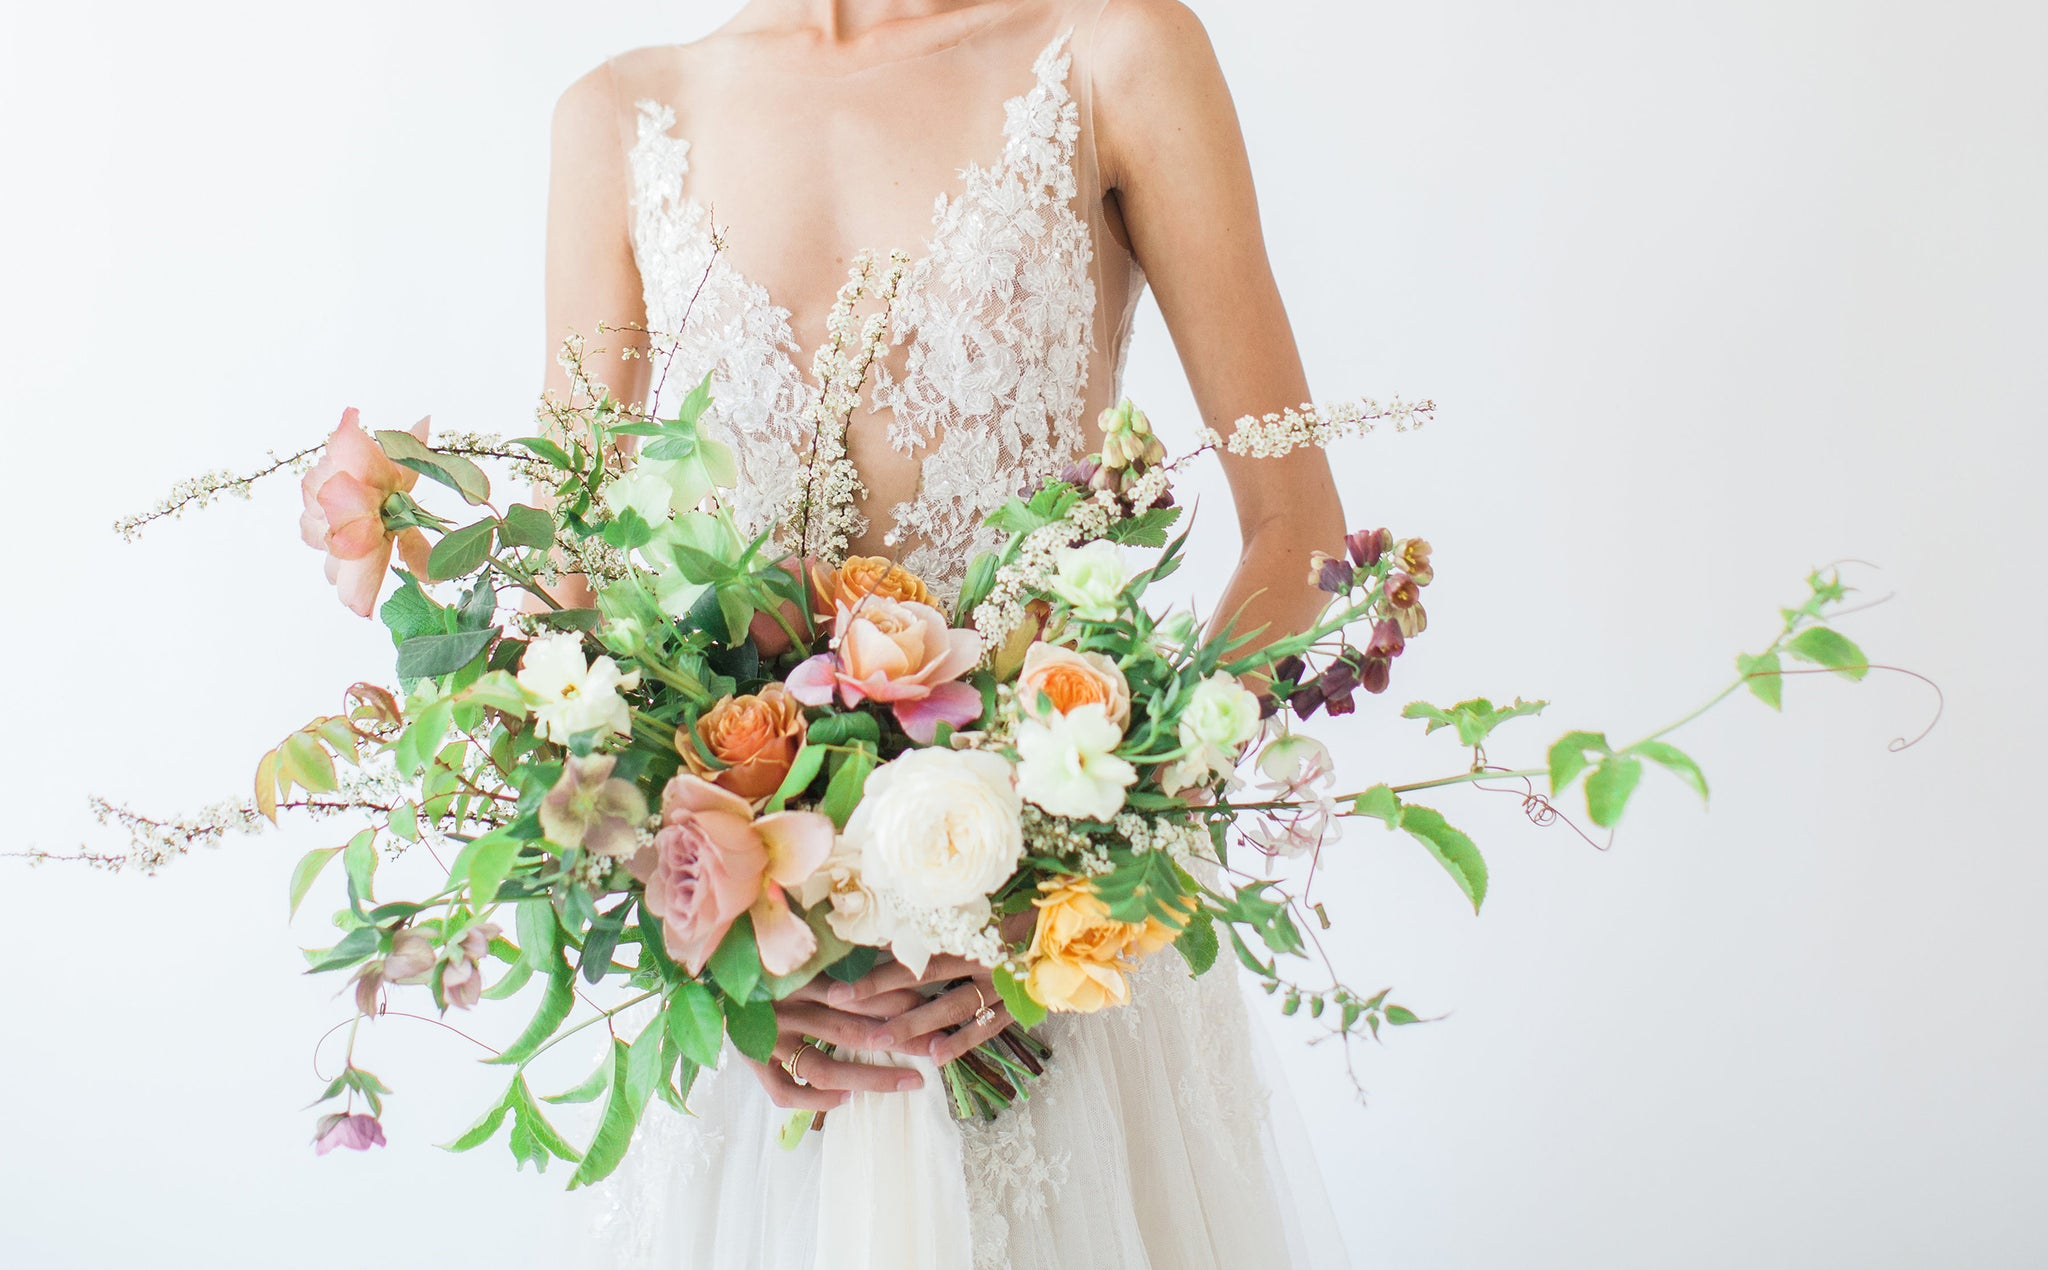 Custom Wedding Florals | Native Poppy Studio